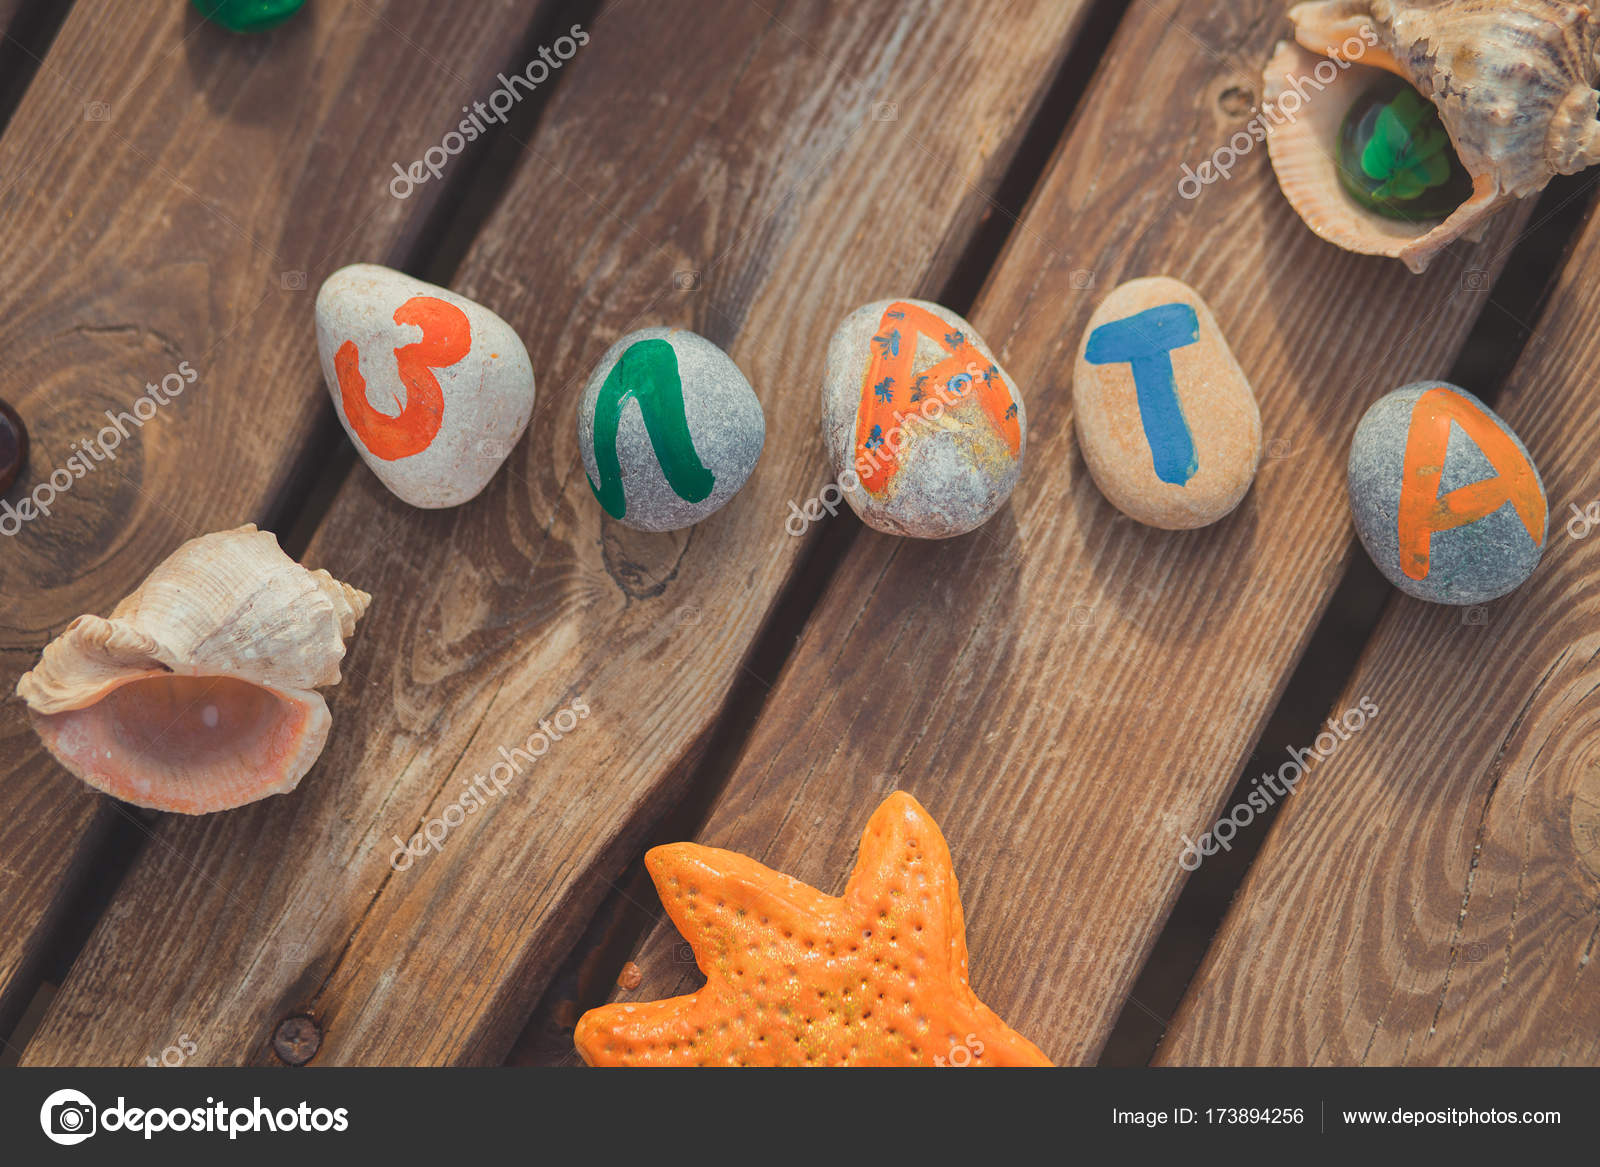 a31743390 Beach stones with colourful letters on wooden table close to sea shell —  Stock Photo